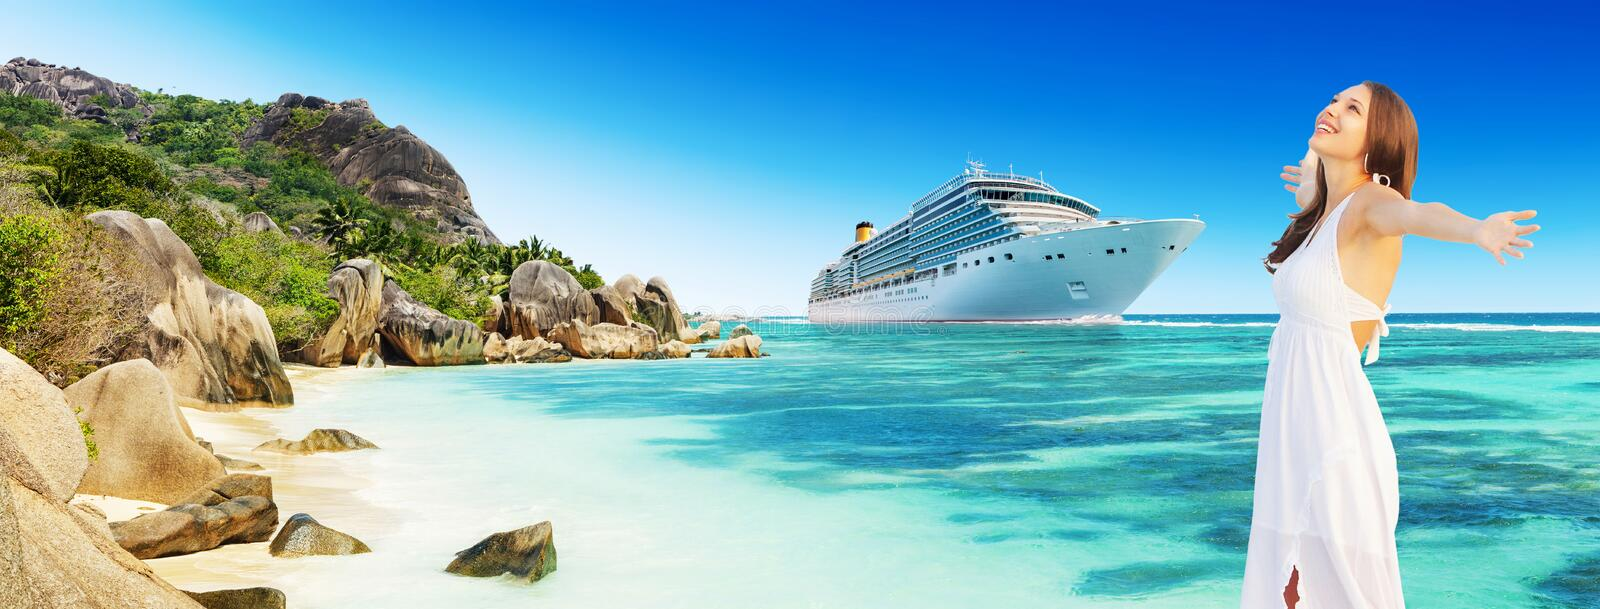 Young woman enjoying beach and cruise holidays royalty free stock images